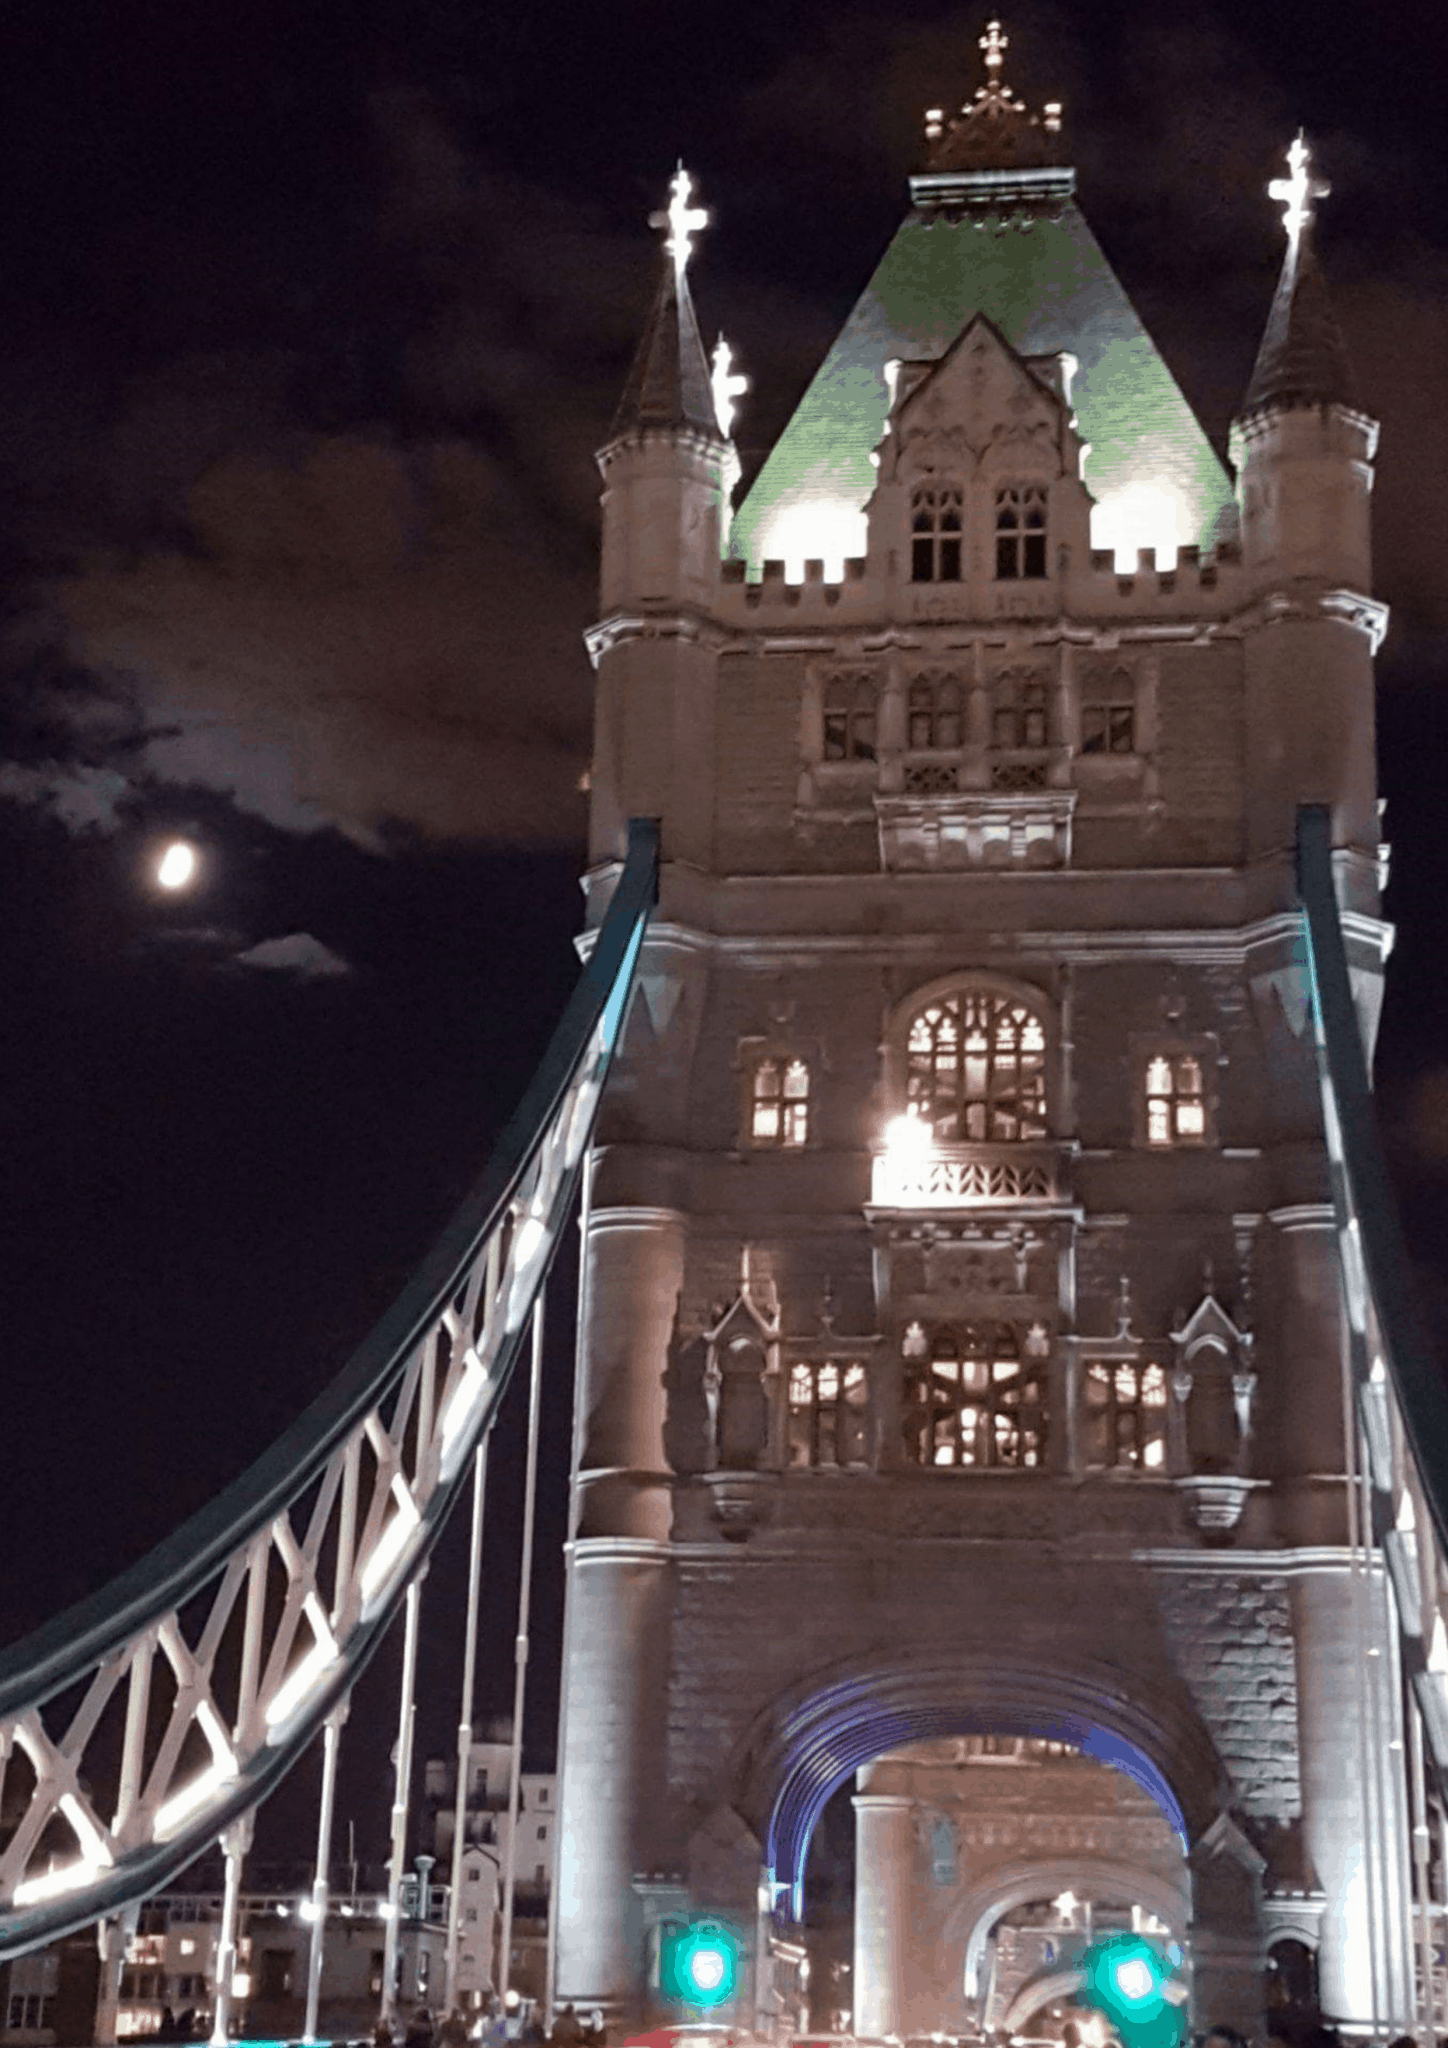 Corporate caricatures atTower Bridge Walkways – Luisa Calvo Wicked Caricatures